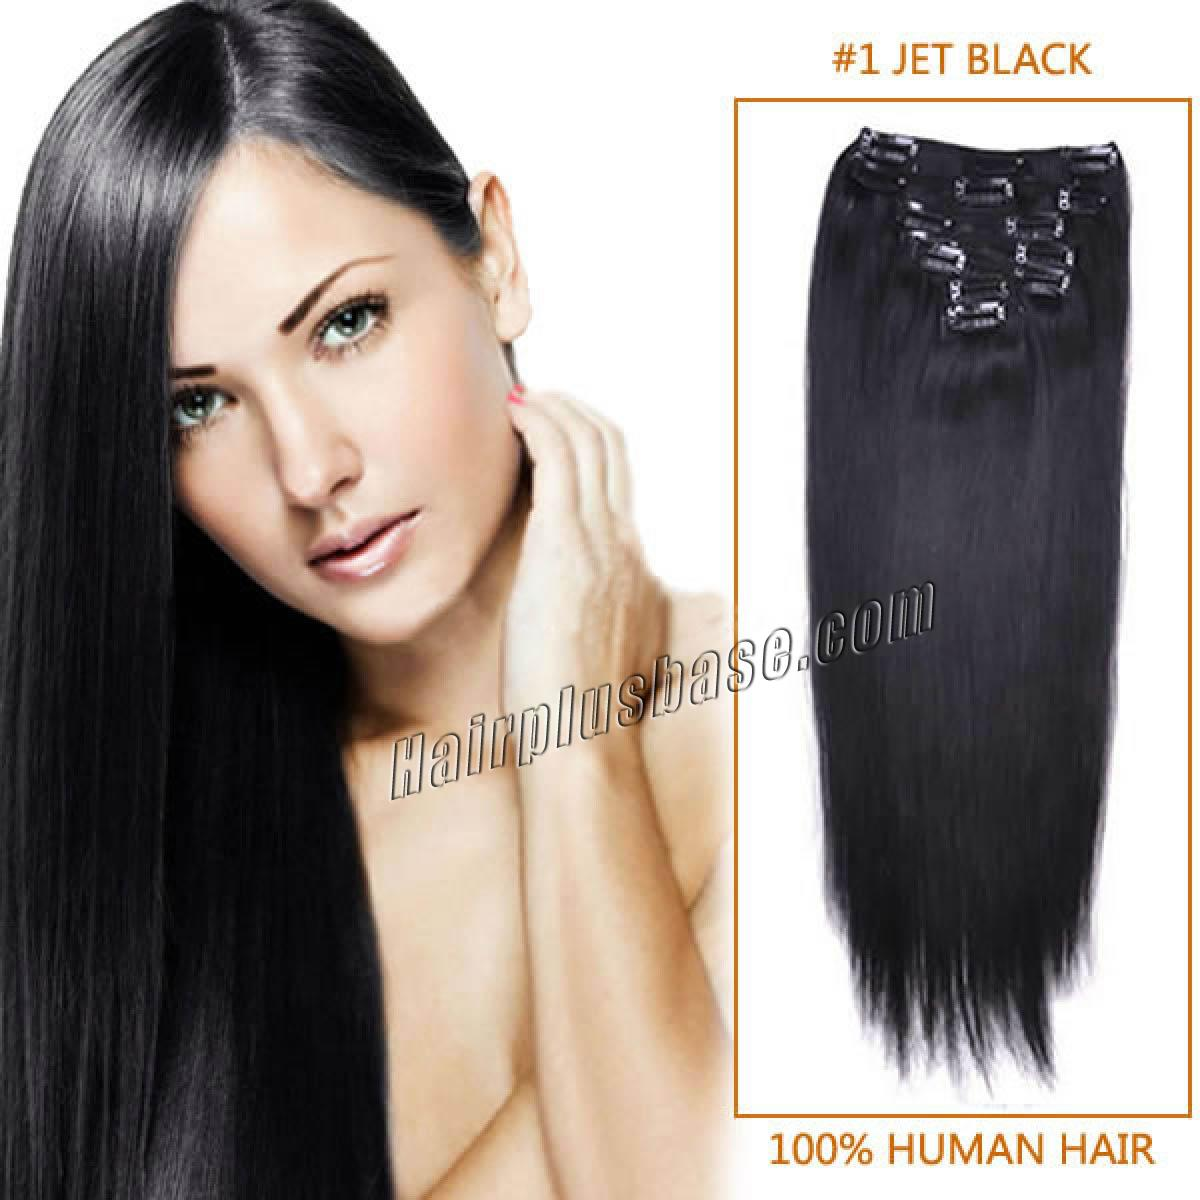 32-inch--1-jet-black-clip-in-human-hair-extensions-11pcs-10030-tv